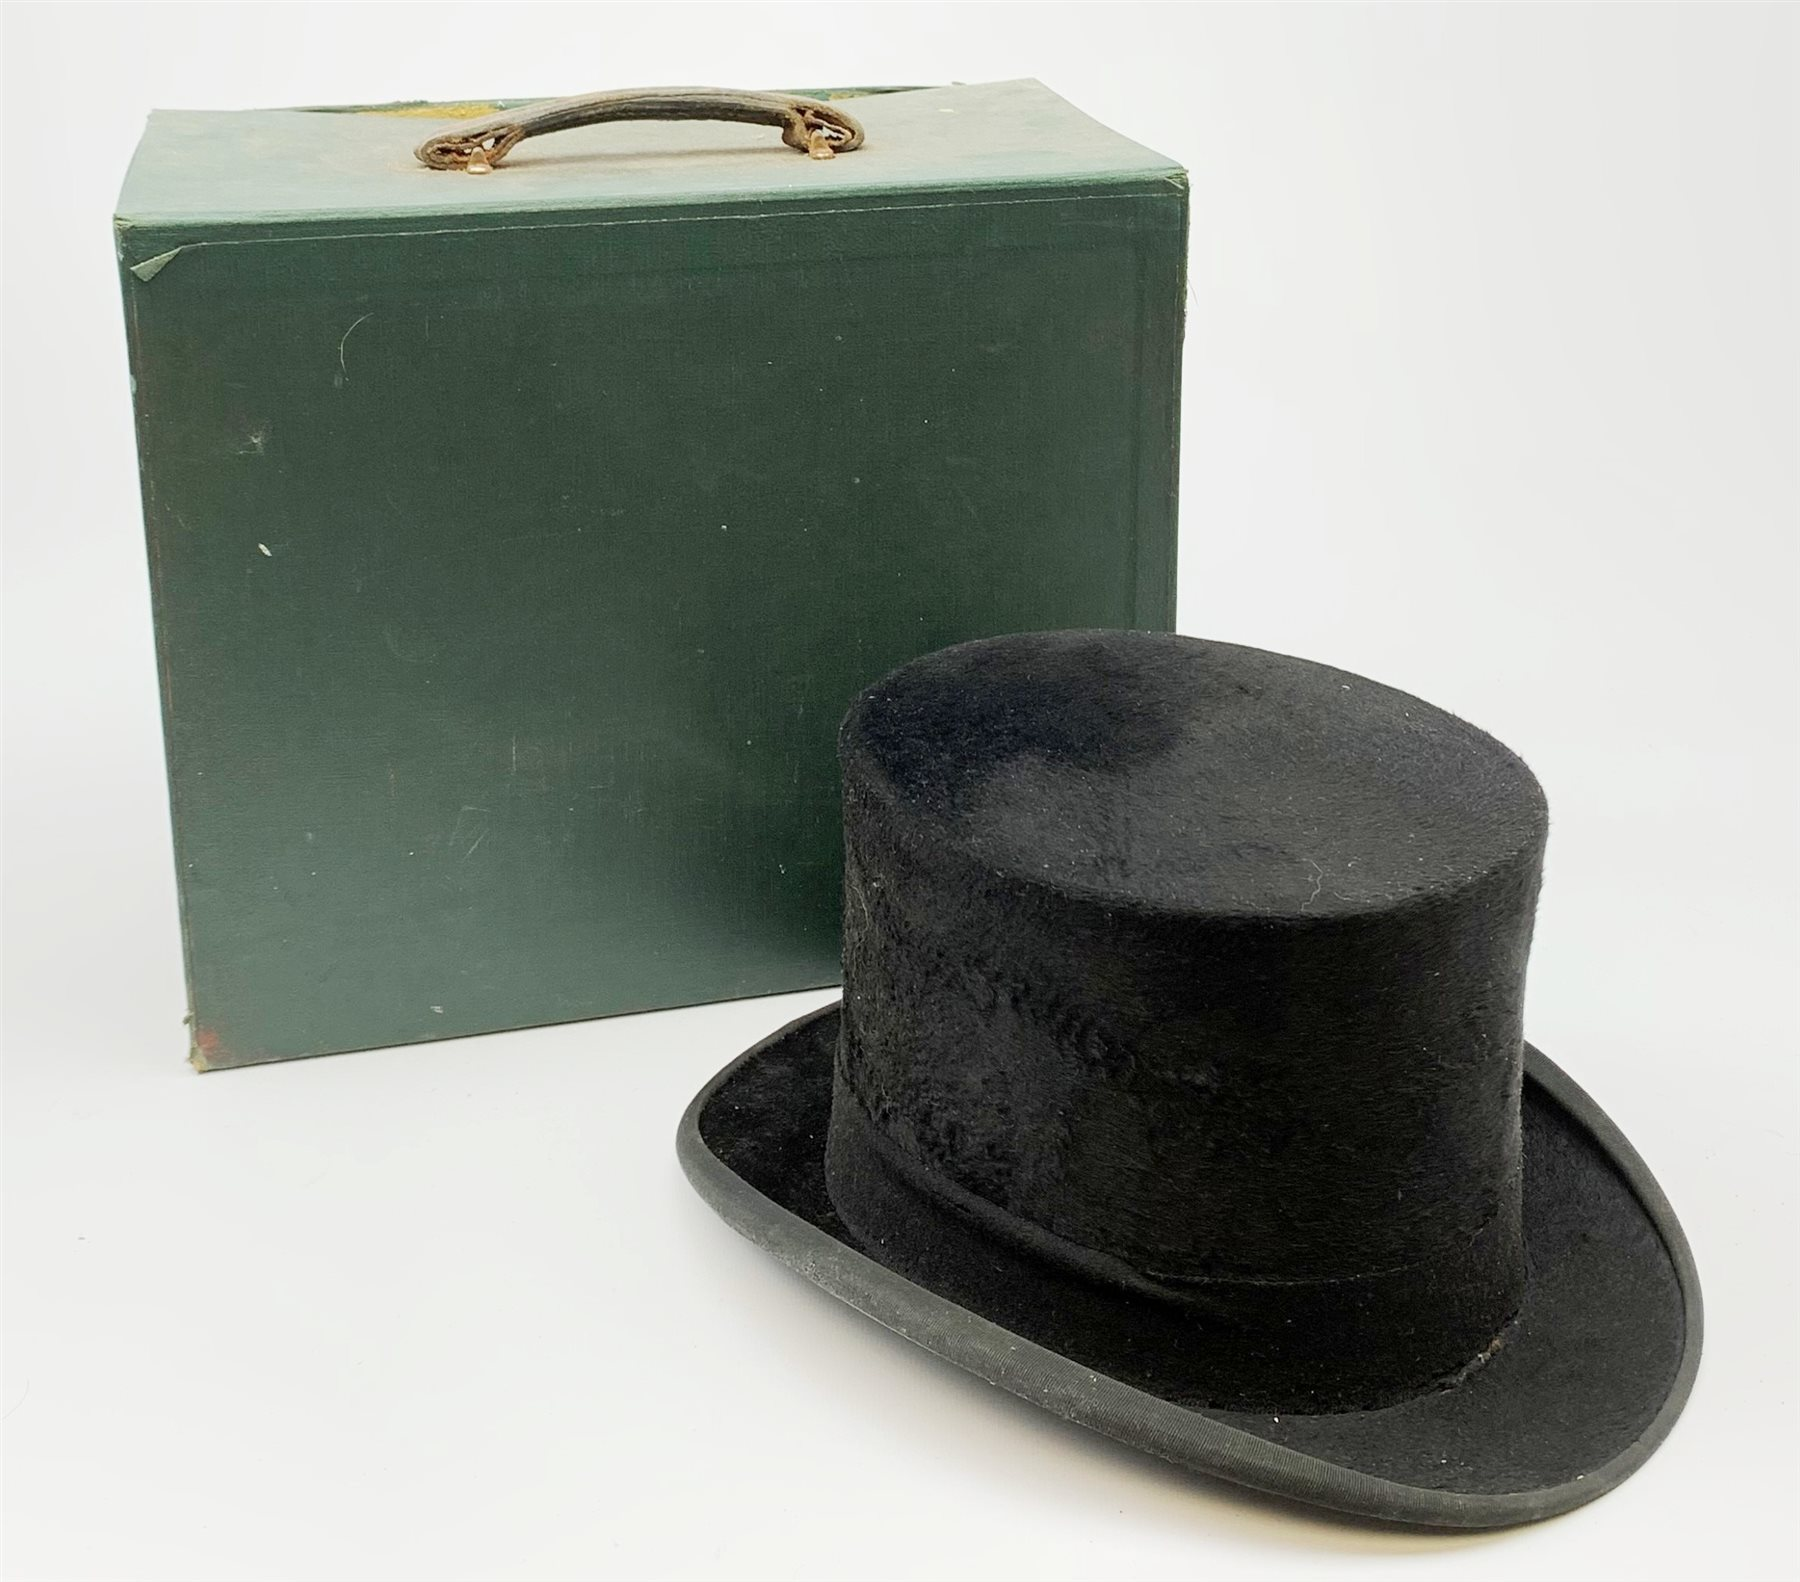 A Vintage black Dunn & Co London top hat, interior circumference measures approximately 58cm, with